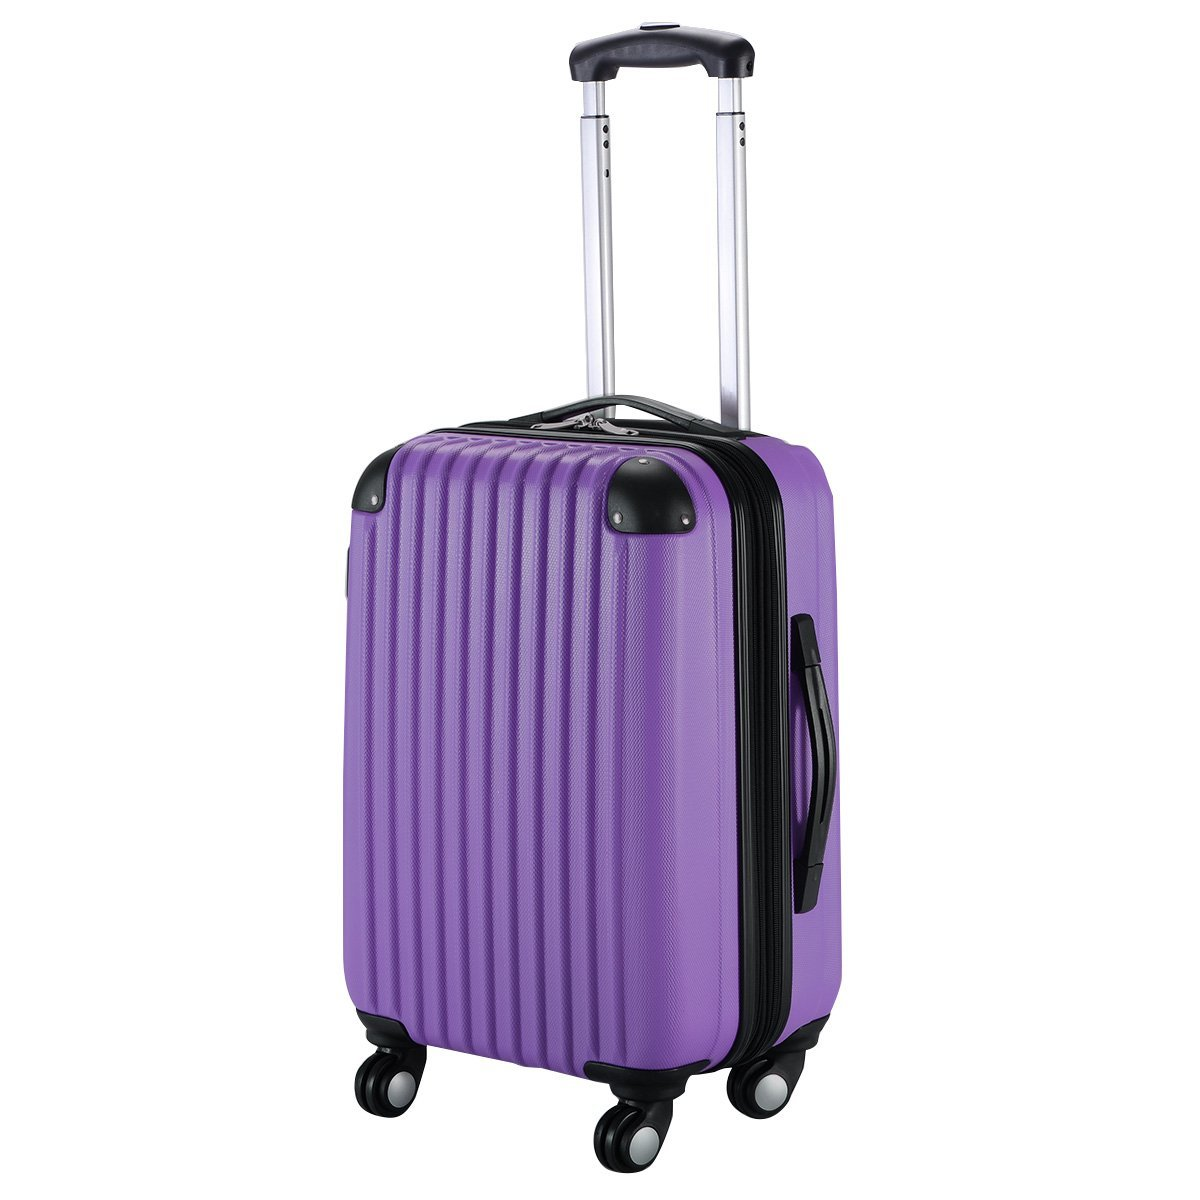 Goplus 20'' ABS Carry On Luggage Expandable Hardside Travel Bag Trolley Rolling Suitcase GLOBALWAY (Purple)